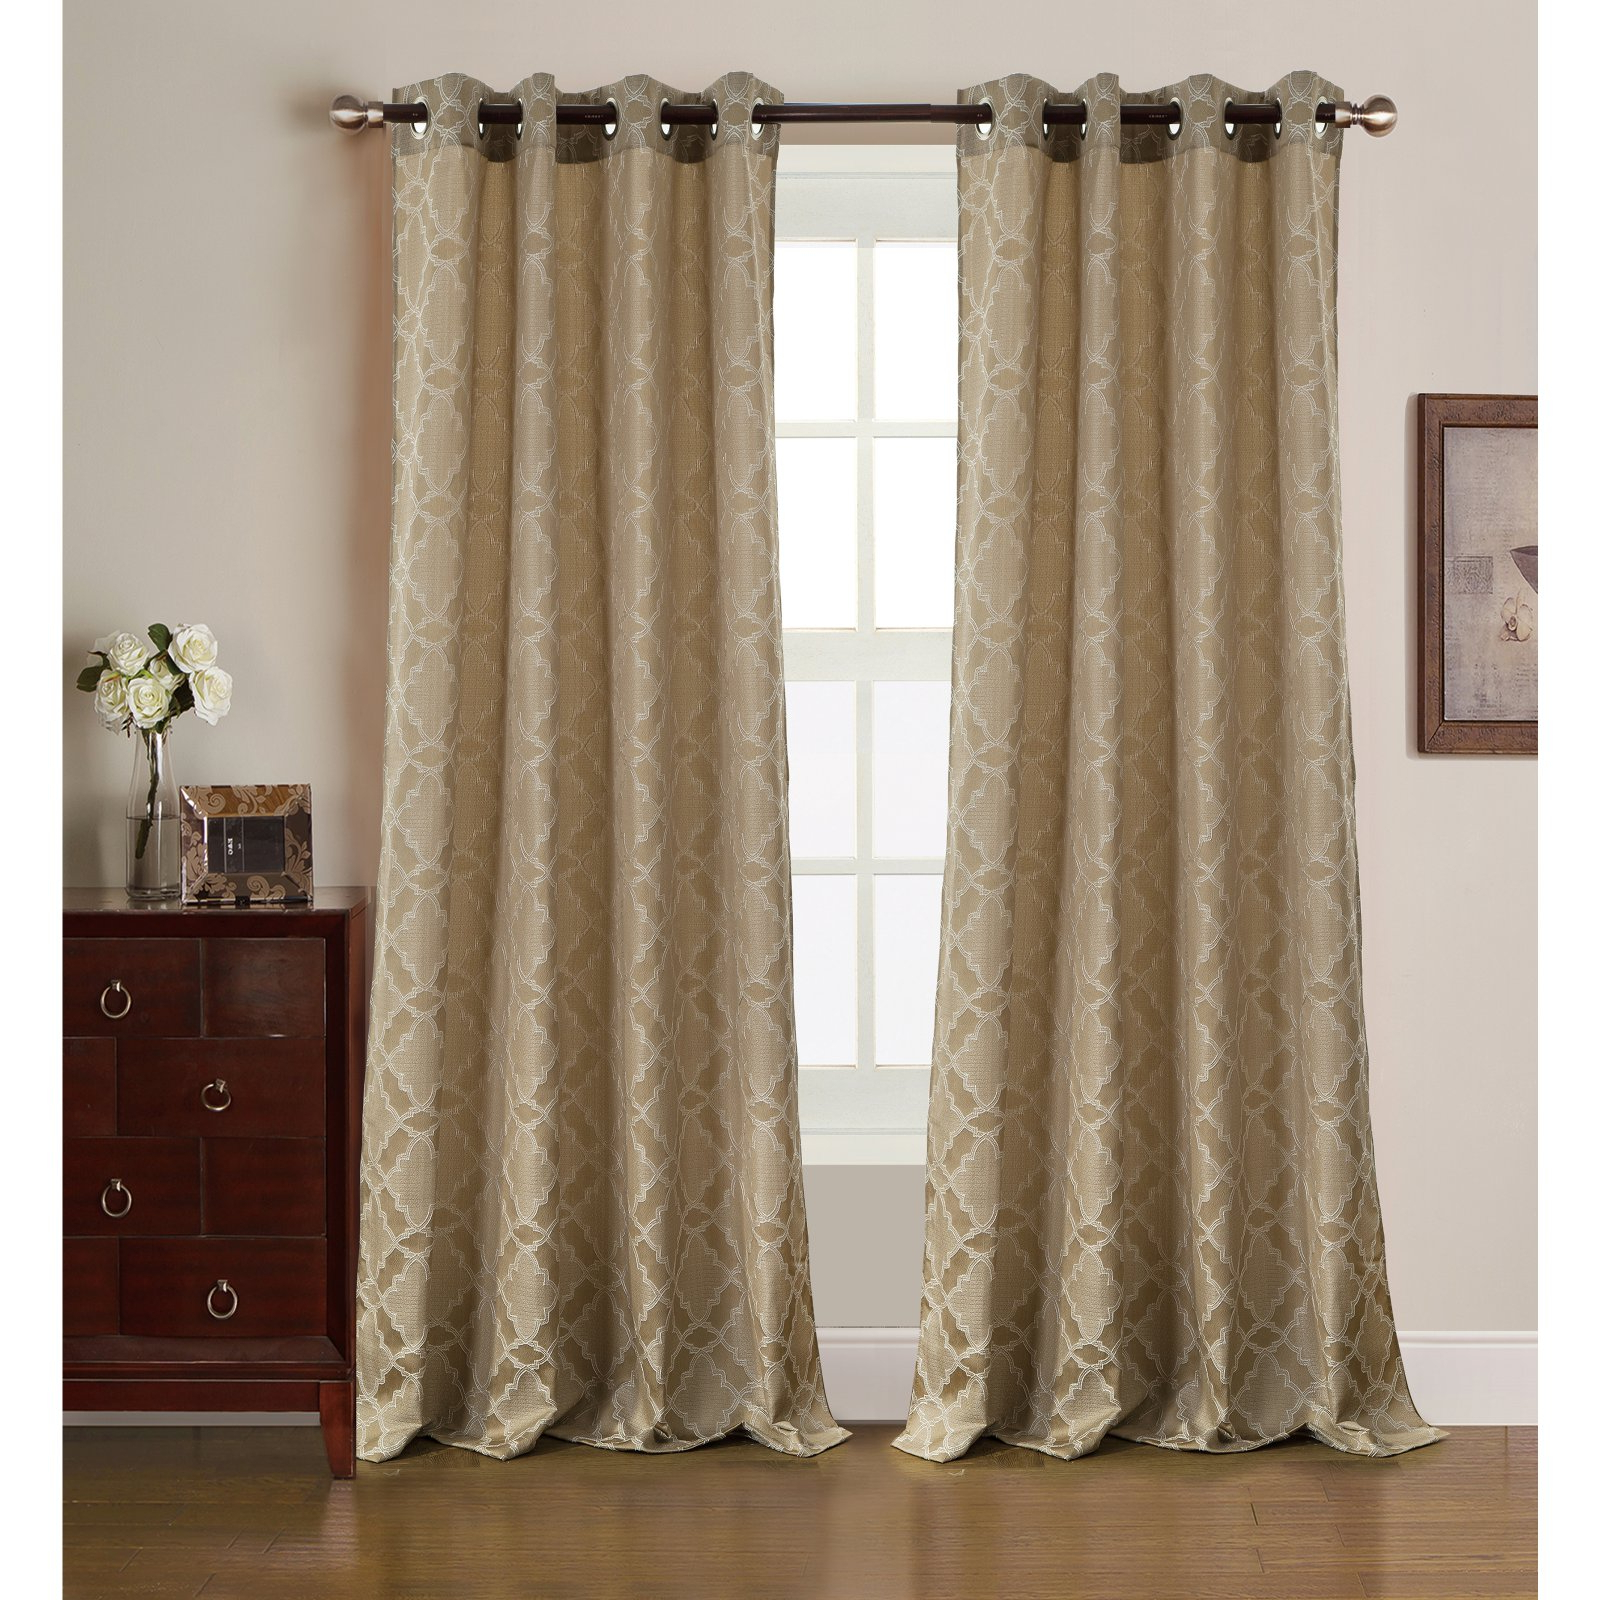 Rt Designers Collection Morgan Jacquard Grommet Curtain Inside Newest Gracewood Hollow Tucakovic Energy Efficient Fabric Blackout Curtains (View 6 of 20)